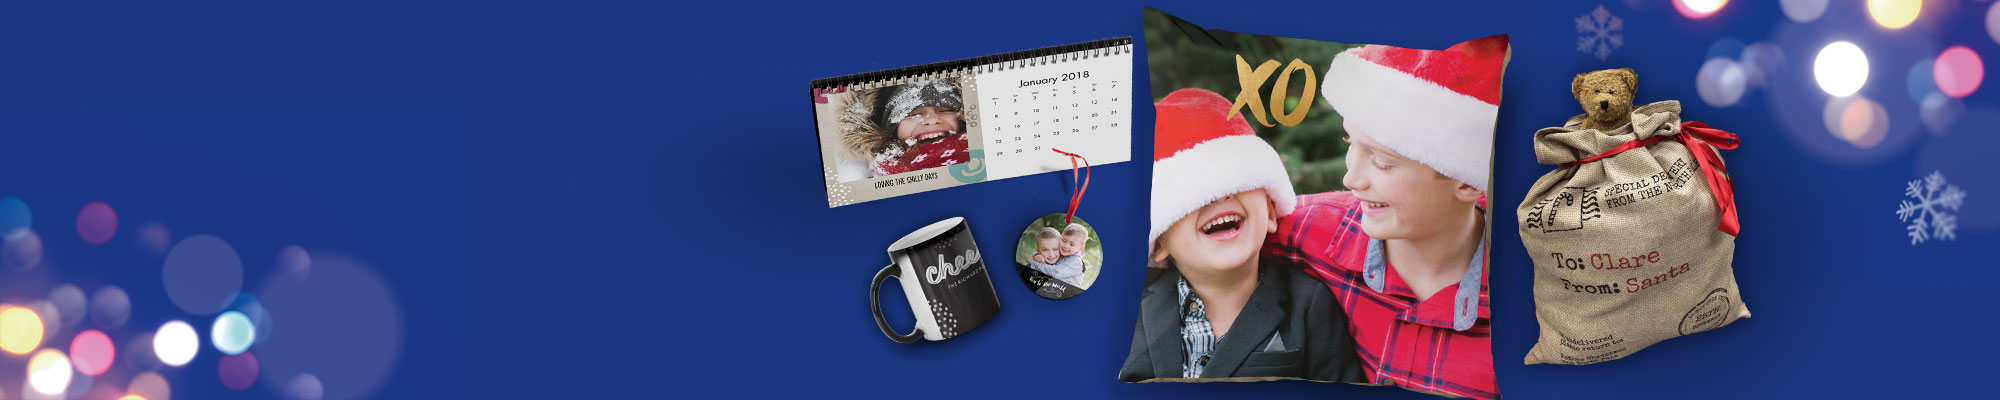 Personalised Calendar Boots 6 Soap And Glory Its A Calendar Girls Eur50 Boots Photo Printing Personalised Mugs Canvas Boots Photo